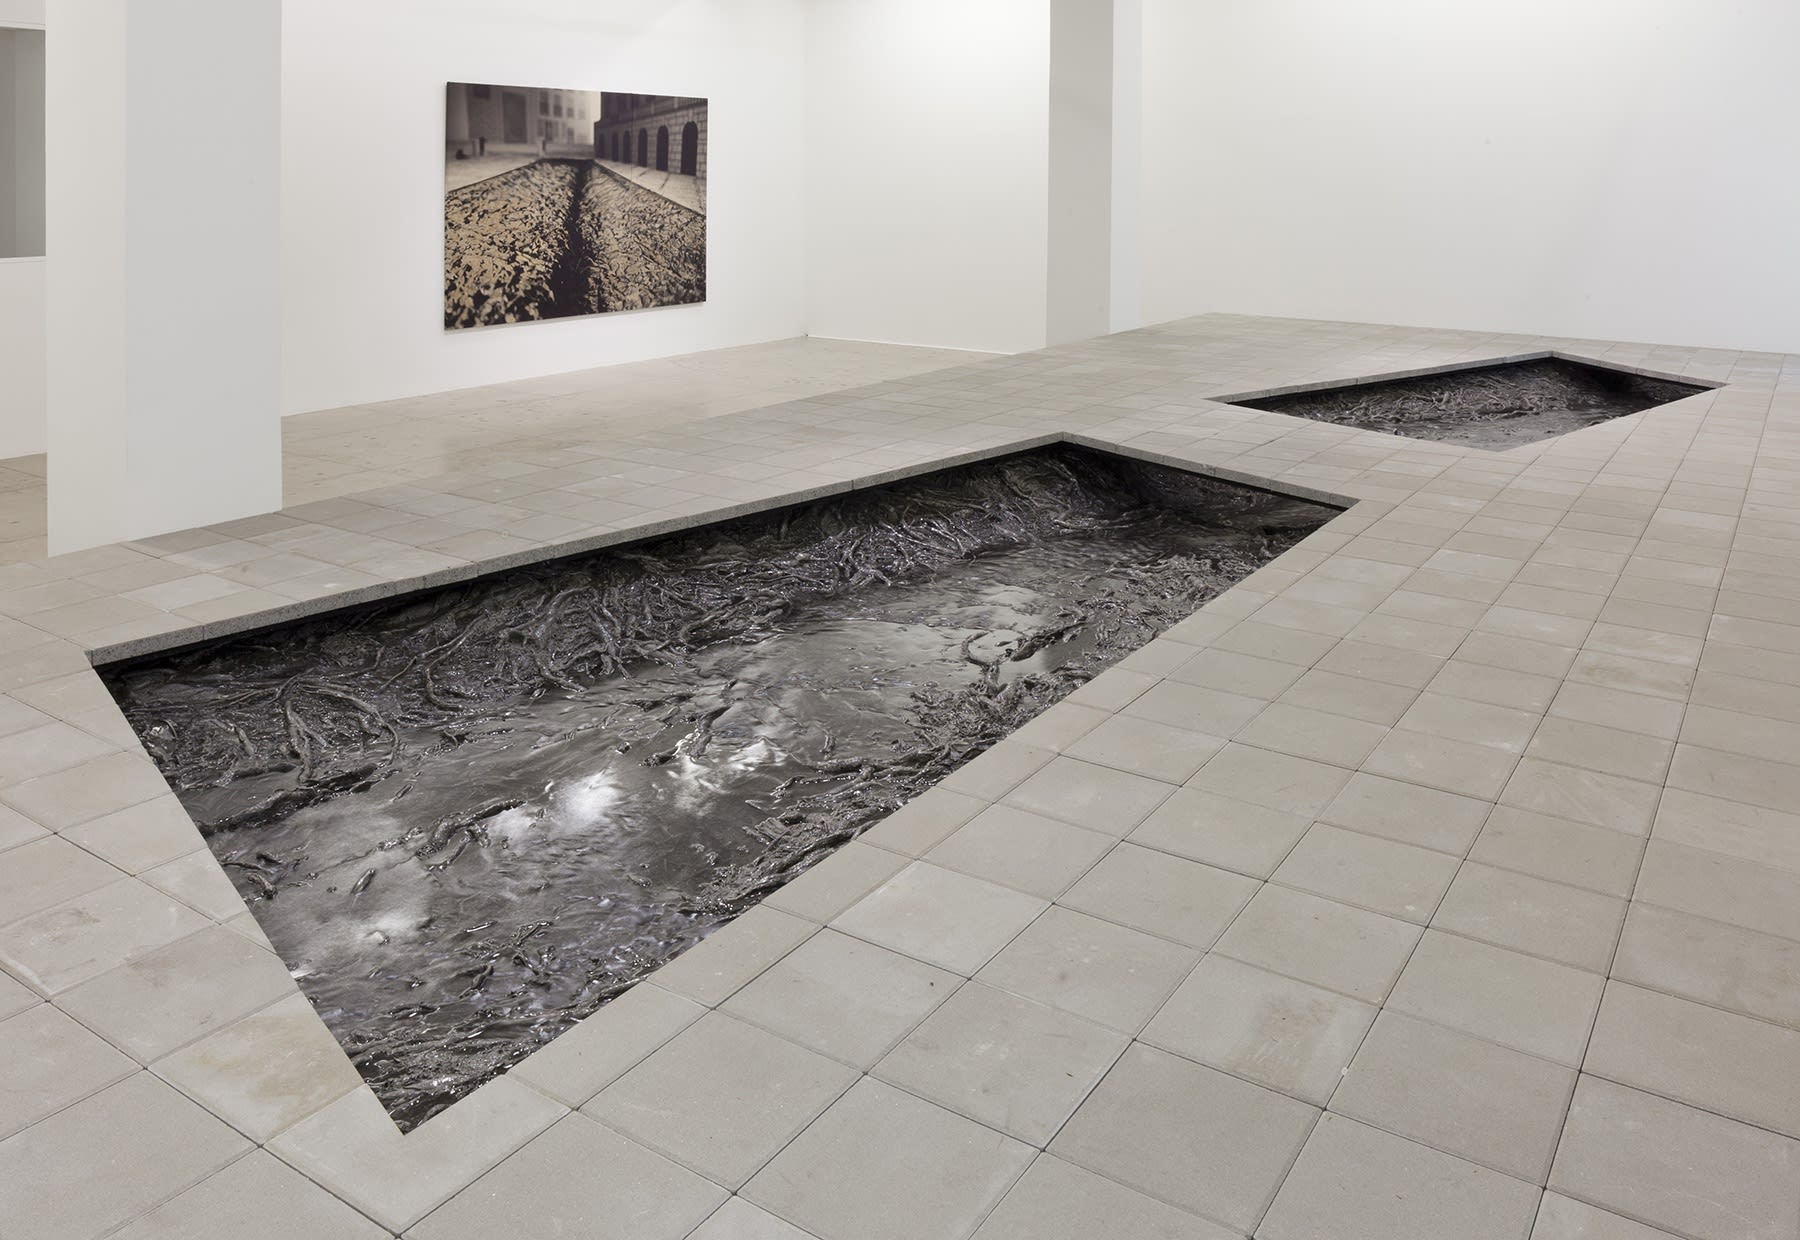 2 rectangular cutouts in the floor reveal a system of shiny, cast roots that appear to be in water.